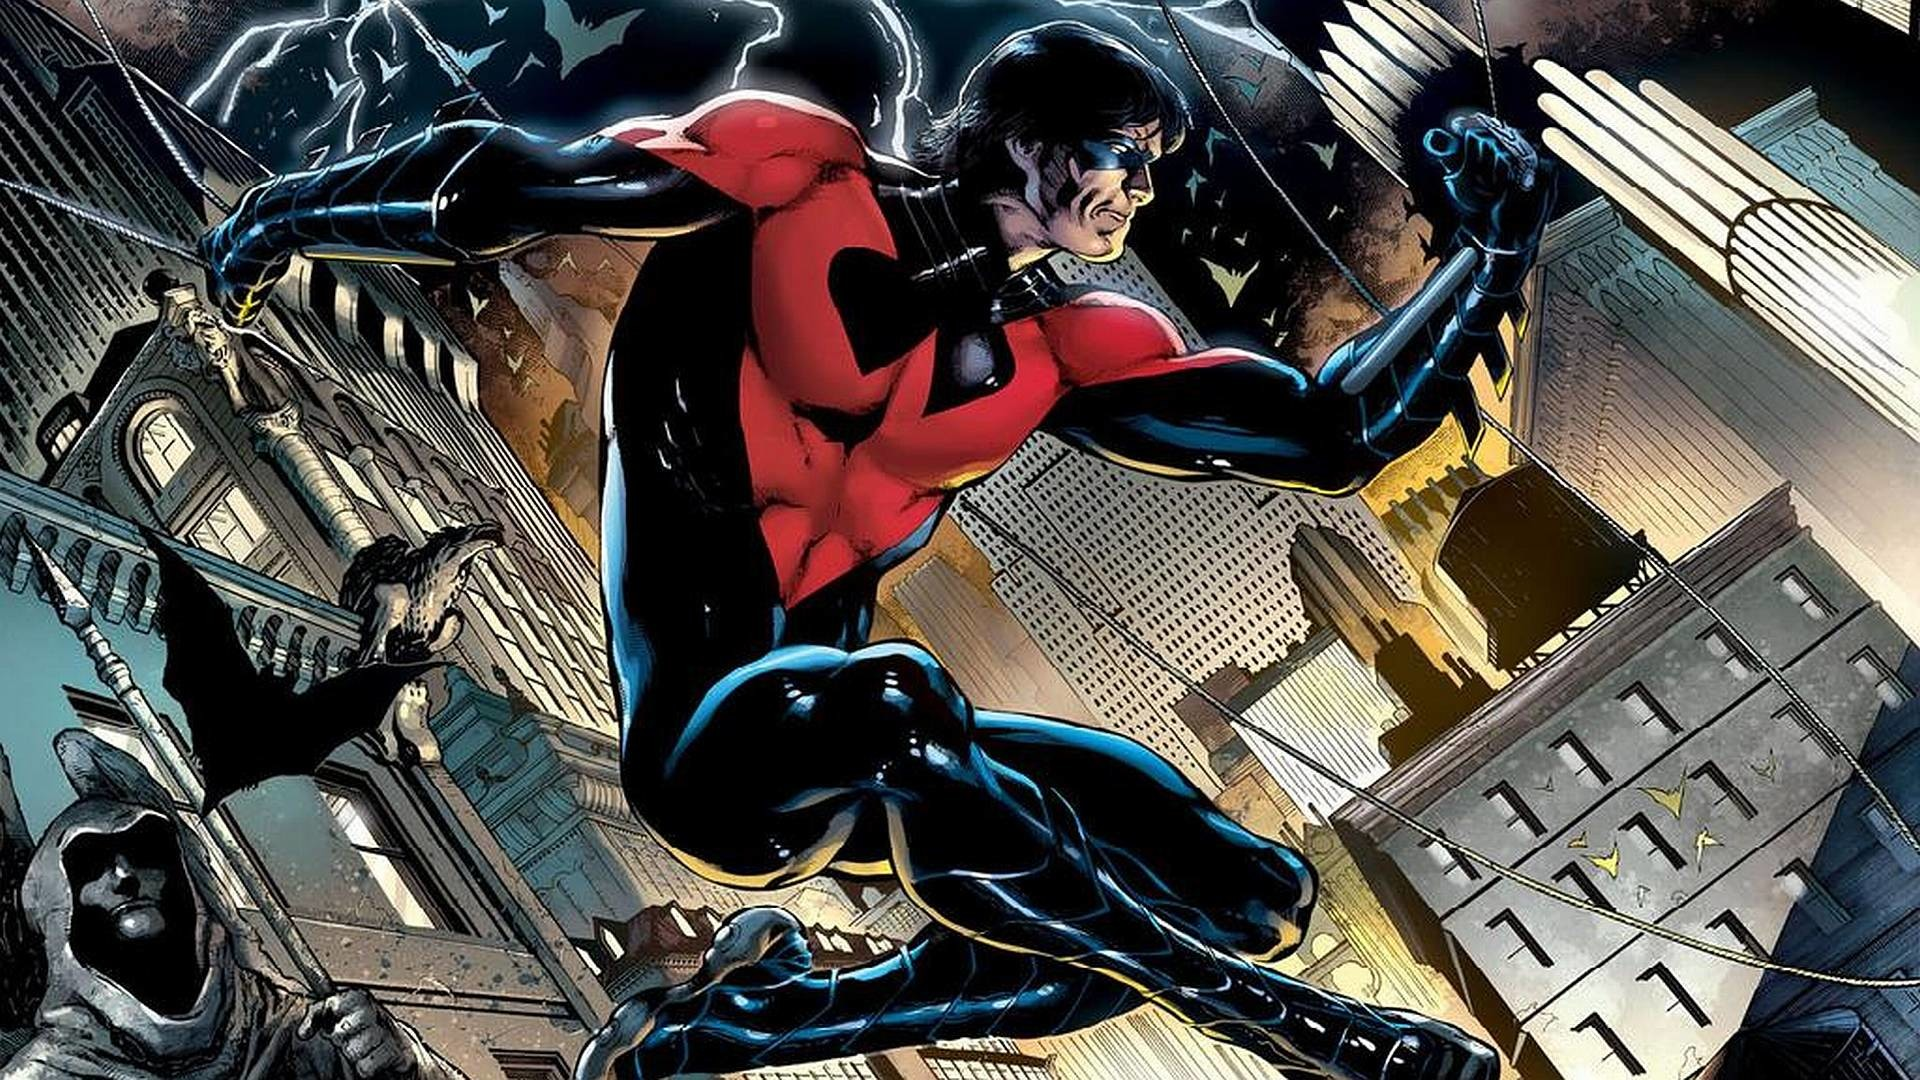 1920x1080 Nightwing Wallpaper 24 258558 Images HD Wallpapers| Wallfoy.